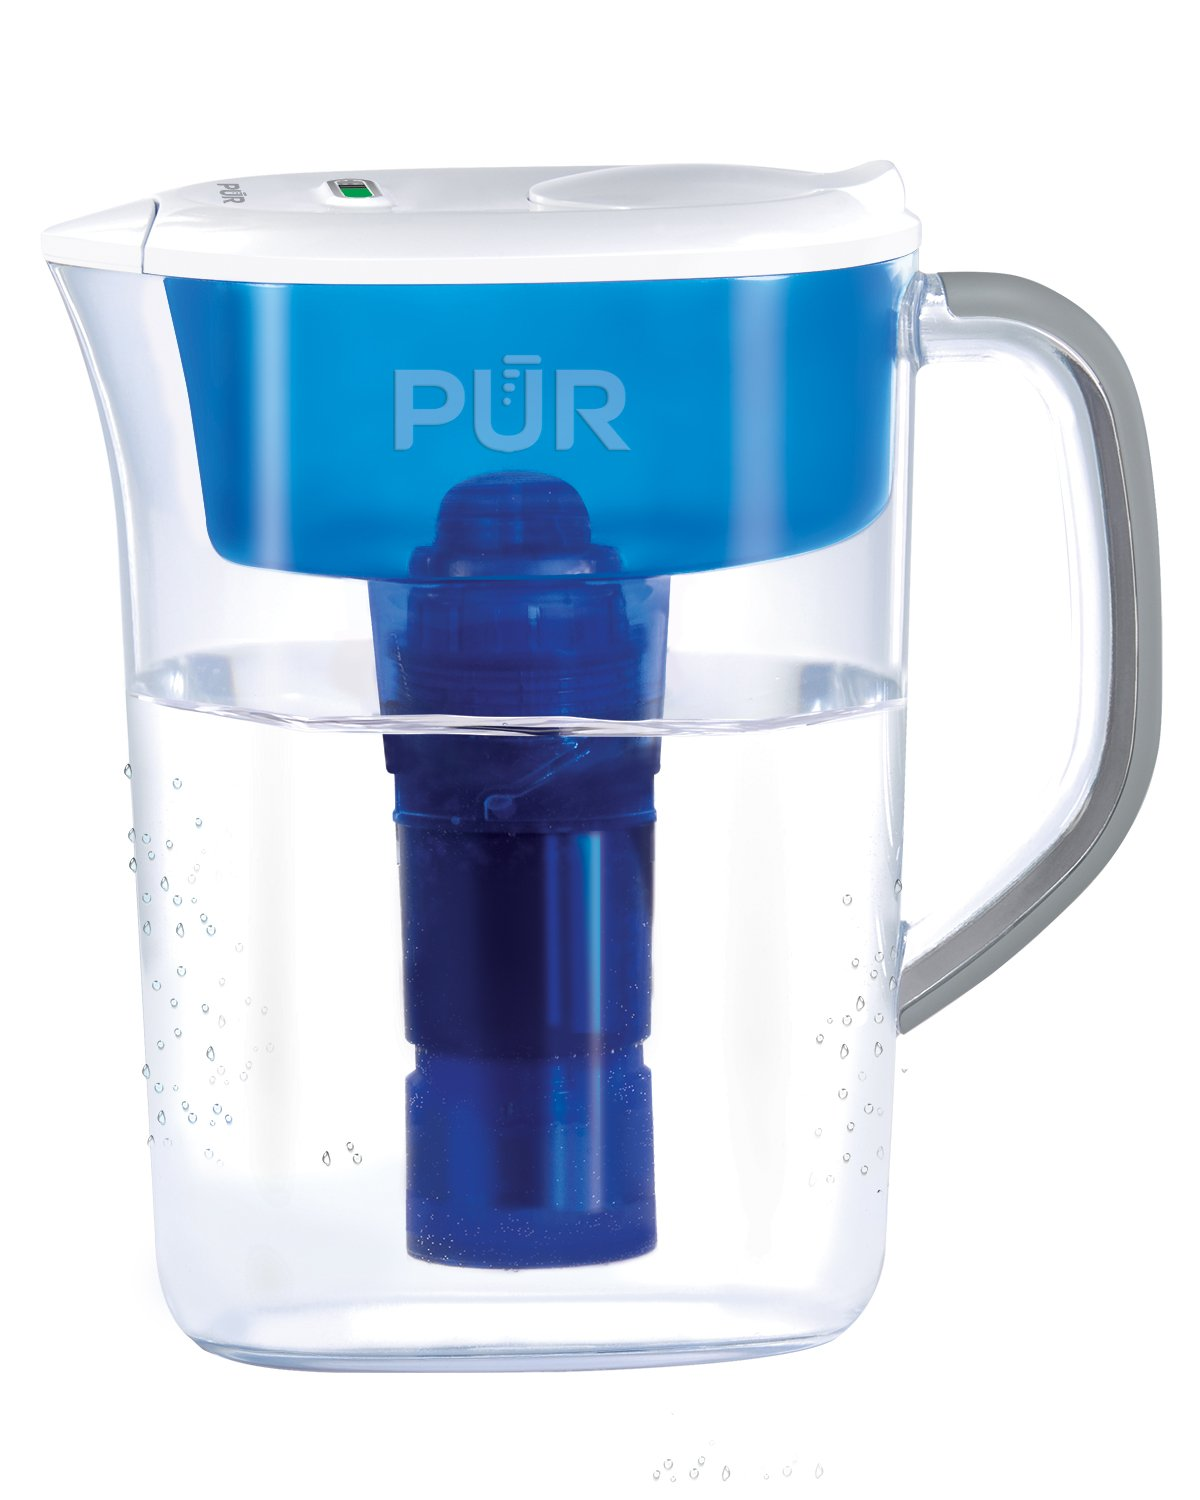 PUR 7 Cup Ultimate Water Filtration Pitcher with LED Indicator, Clear PPT710WAMV1